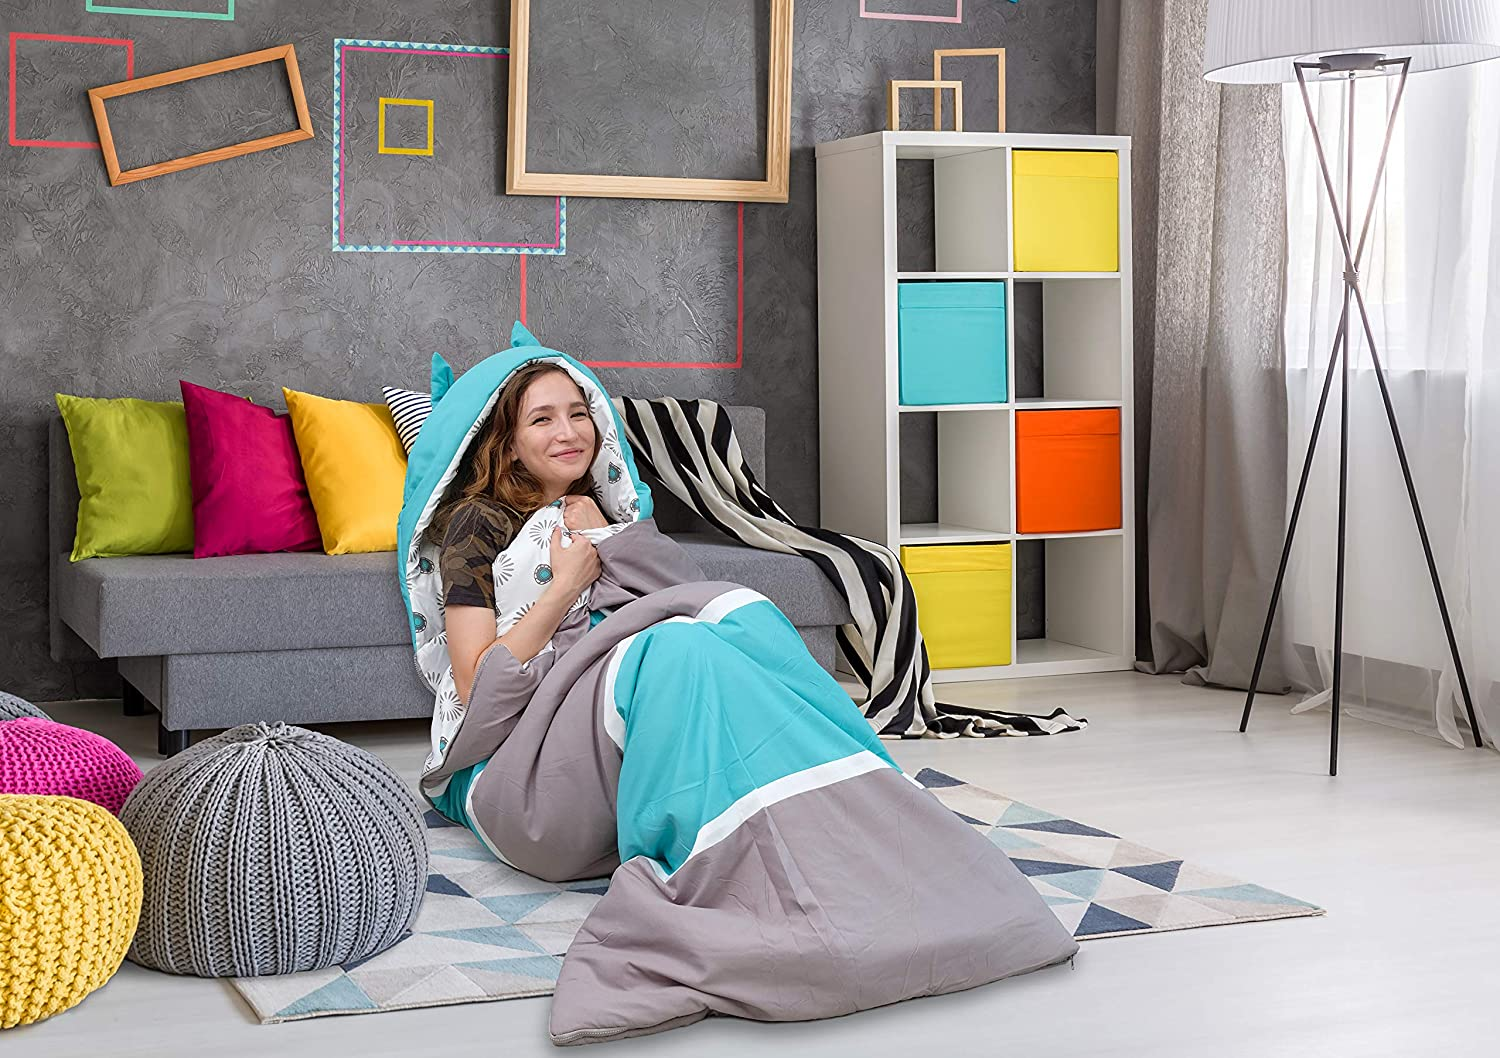 Chic Home Hayes Sleeping Bag with Cat Ear Hood Two Tone Design with Geometric Pattern Print Interior for KidsTeens & Young Adults Zipper Closure, Twin X-Long, Grey/Aqua